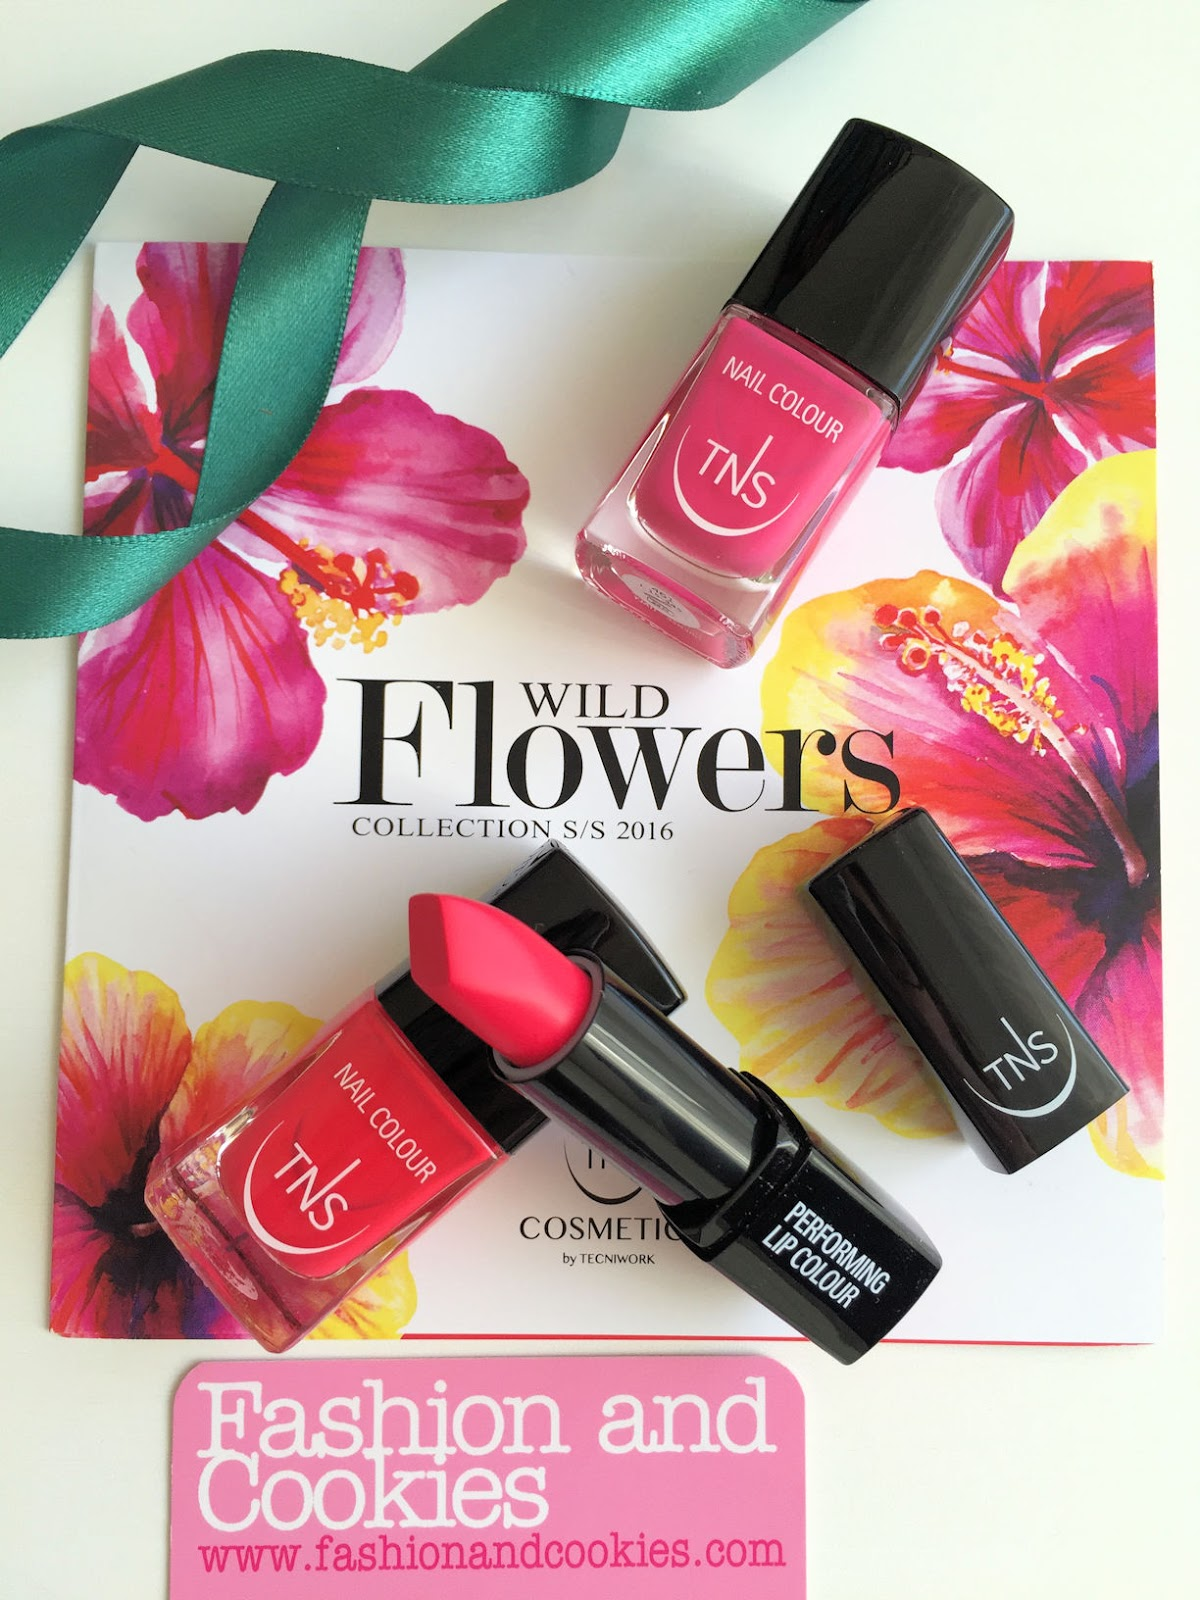 TNS Cosmetics Wild Flowers collection review on Fashion and Cookies beauty blog, beauty blogger